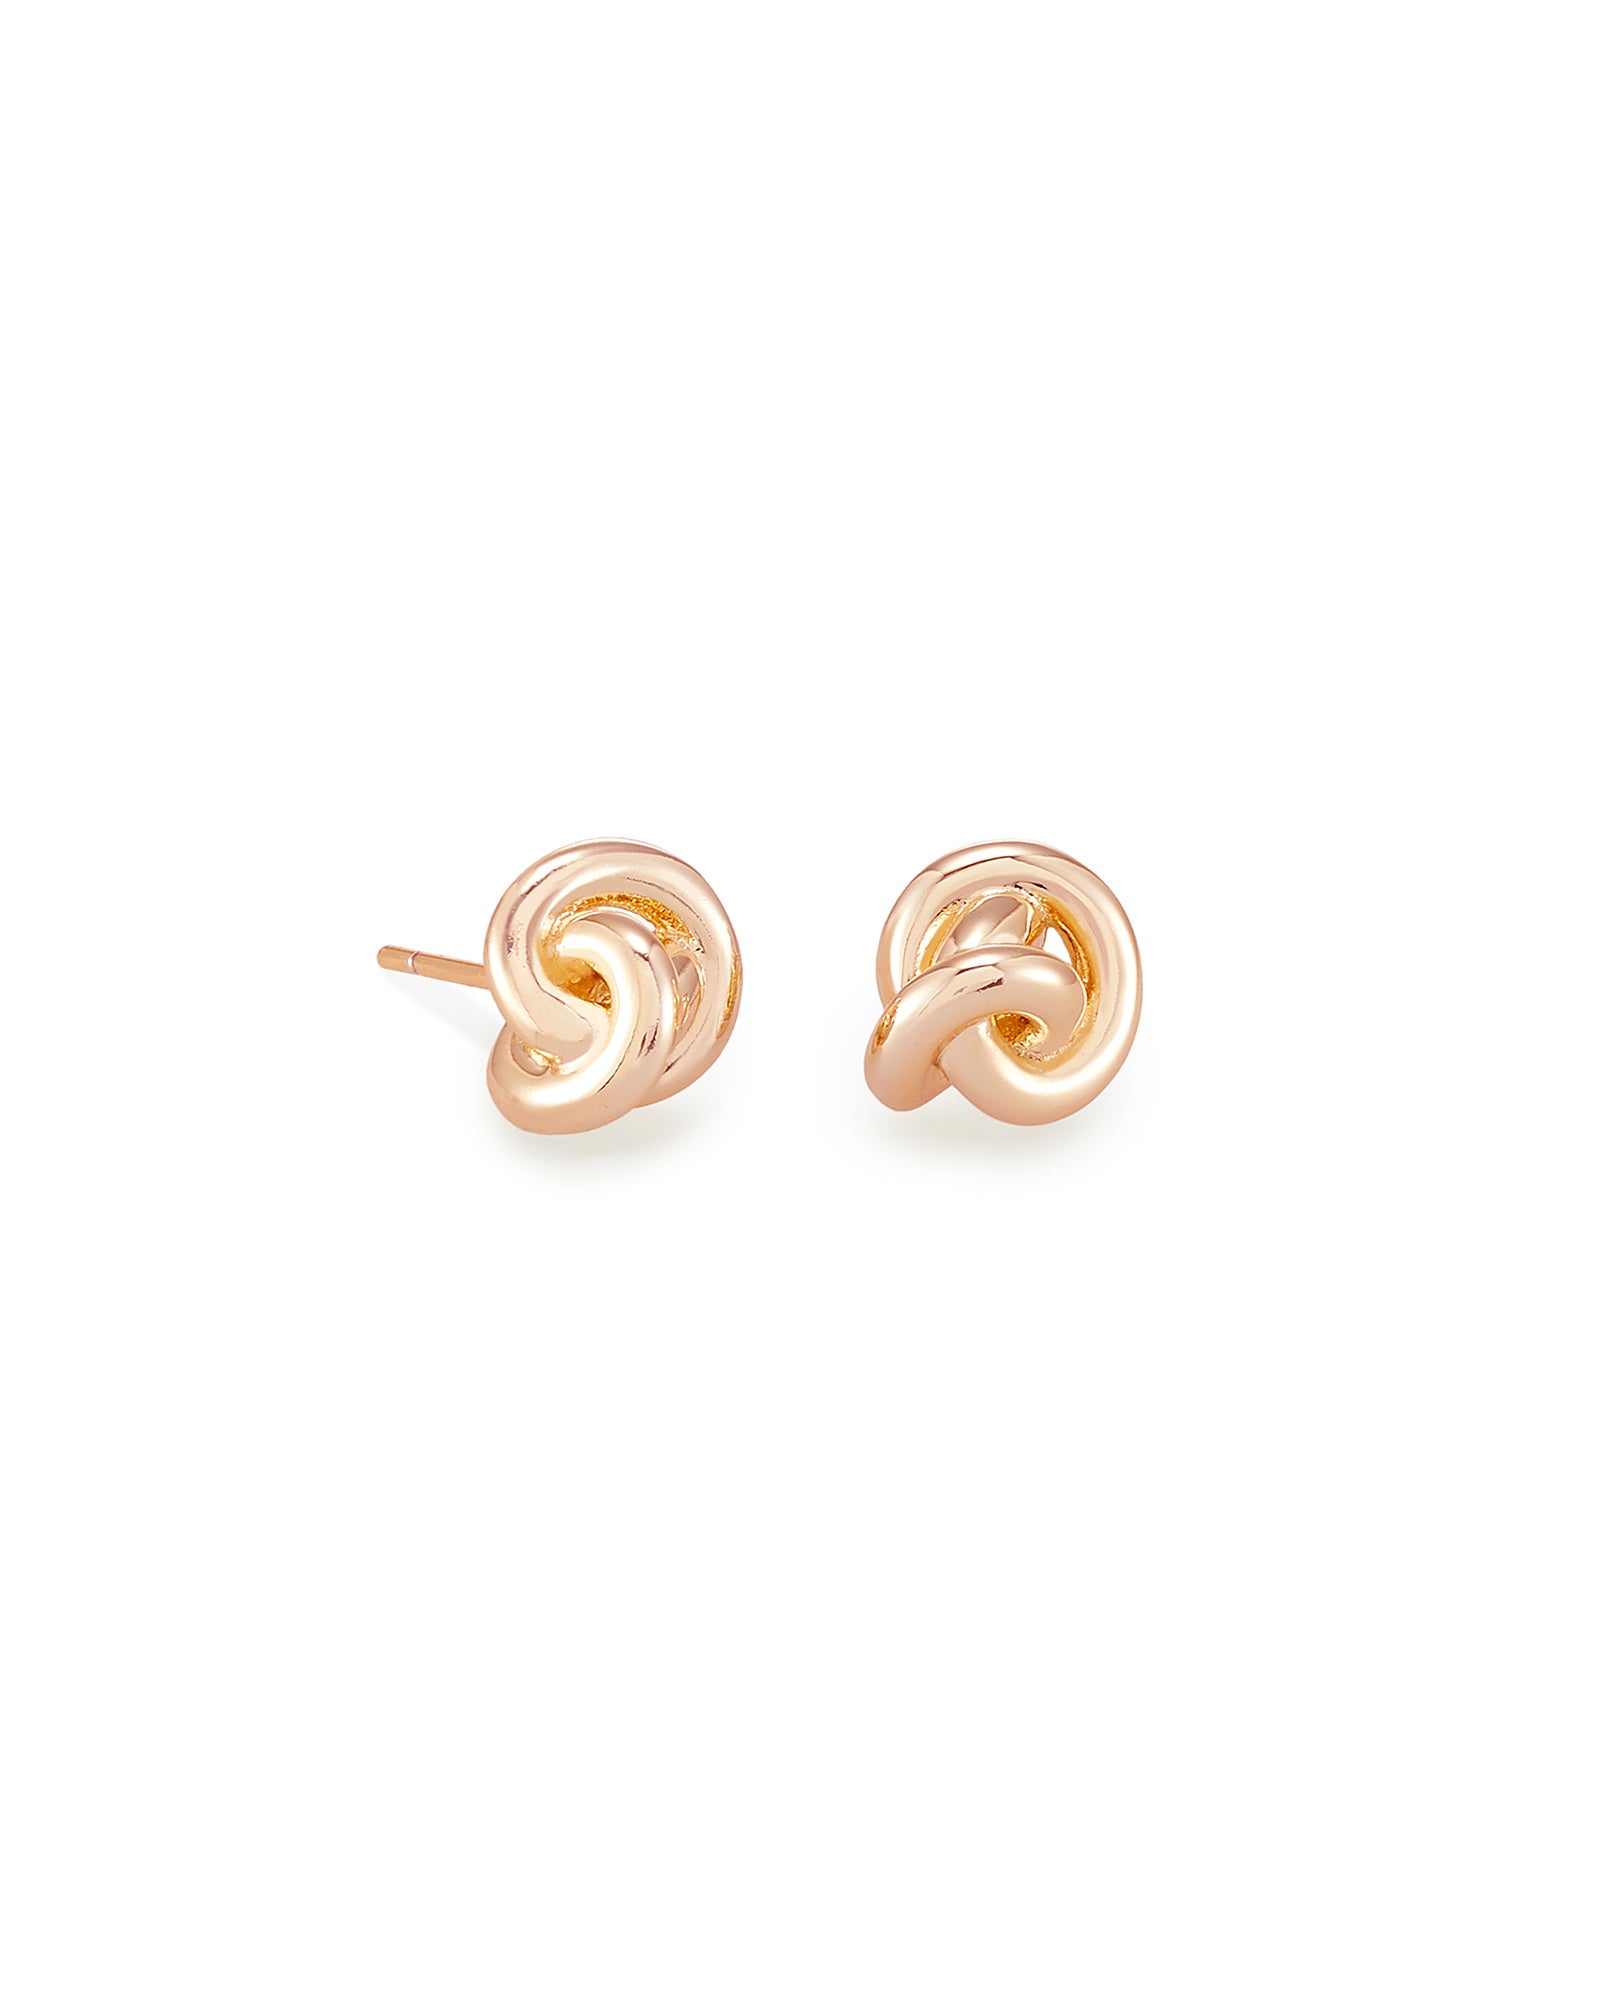 Presleigh Stud Earrings